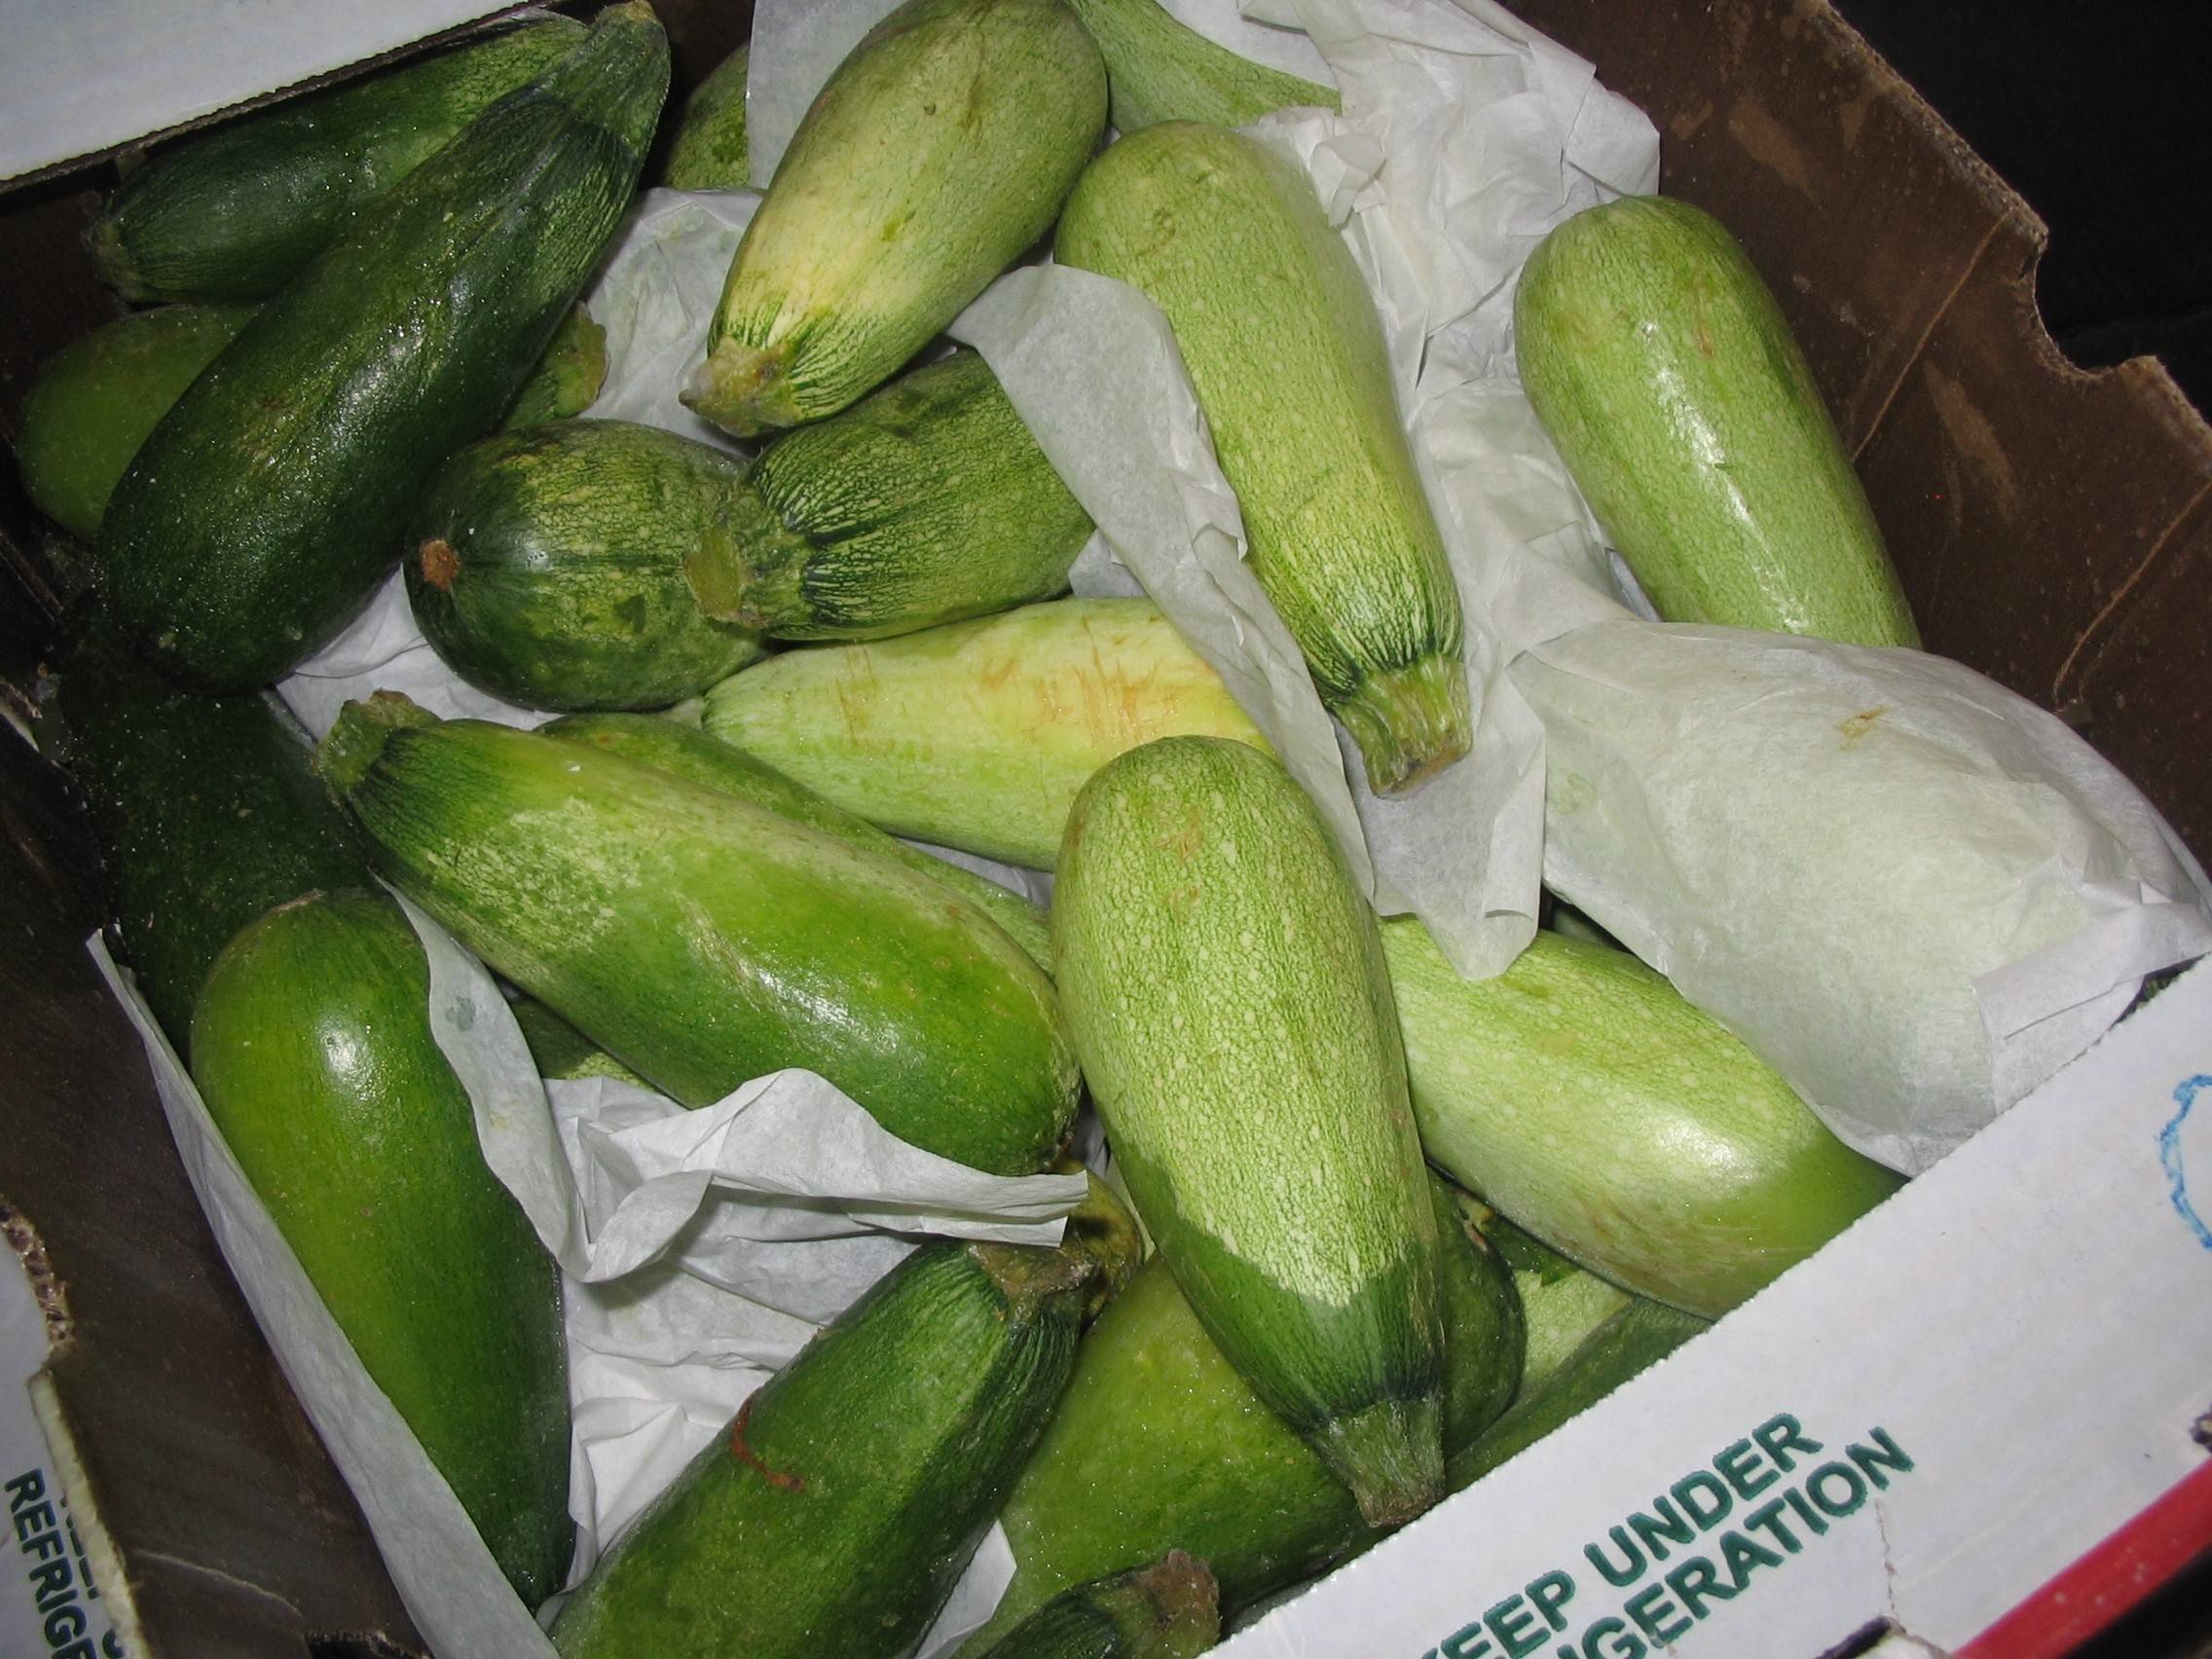 The zucchini donated to the Northern Illinois Food Bank in this 2010 photograph apparently did find new homes. The food bank currently is accepting zucchini donations from this year's bumper crop.